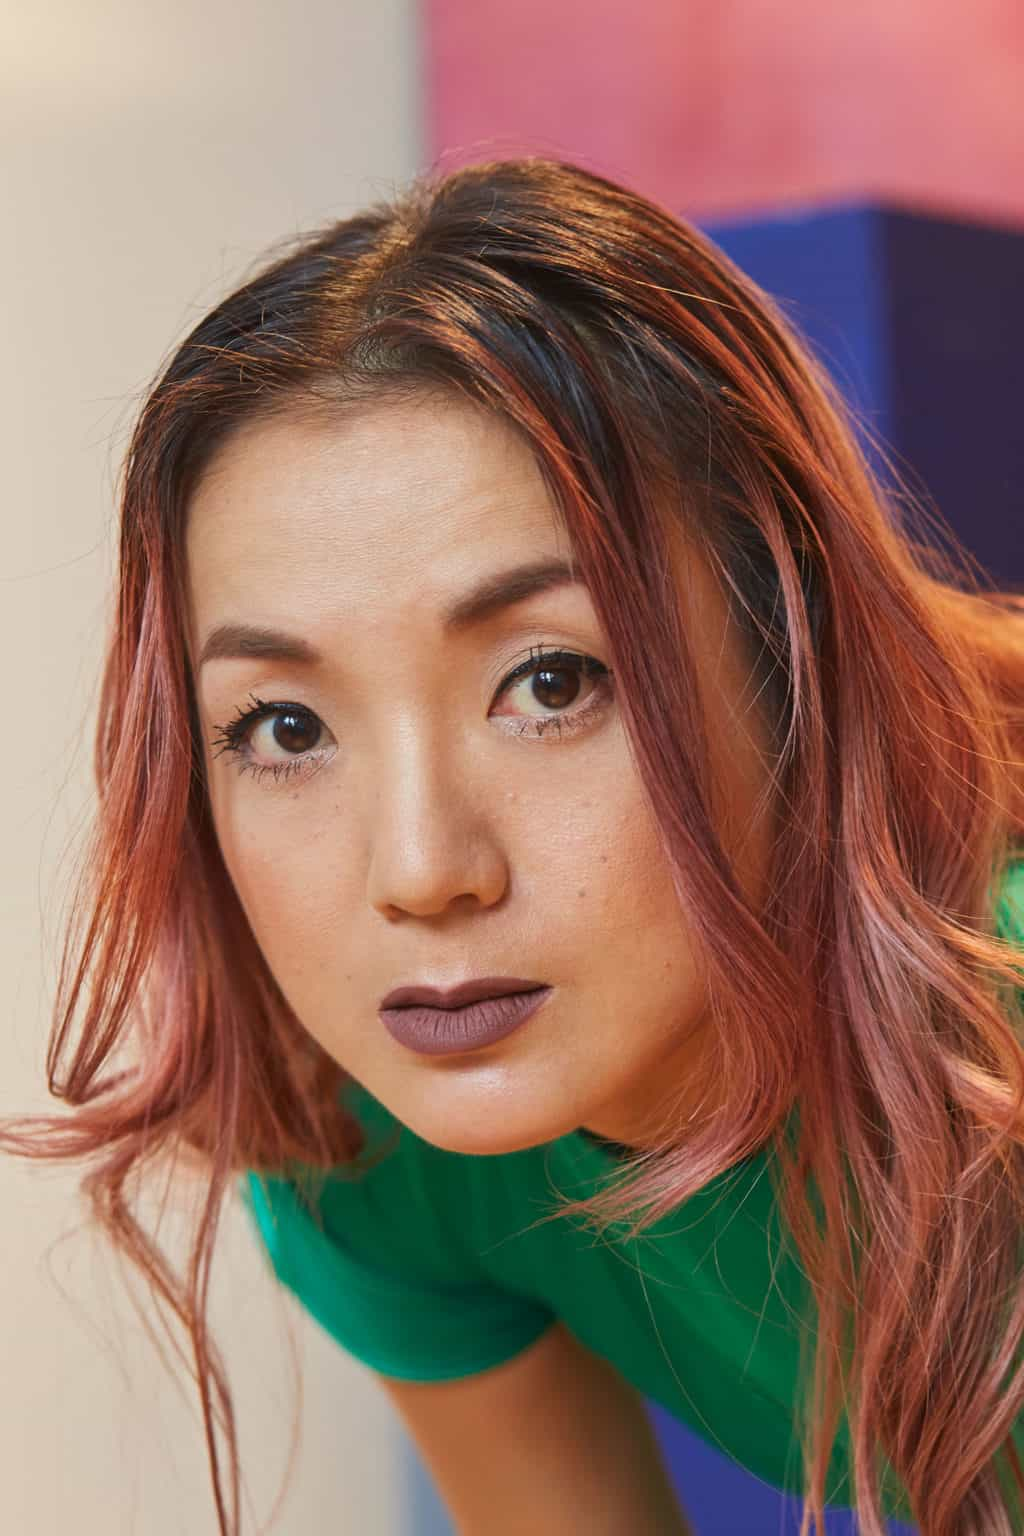 """""""Close-up portrait of Japanese woman, wearing green dress. Pink and purple highlights in her hair. Plinths in the background."""""""